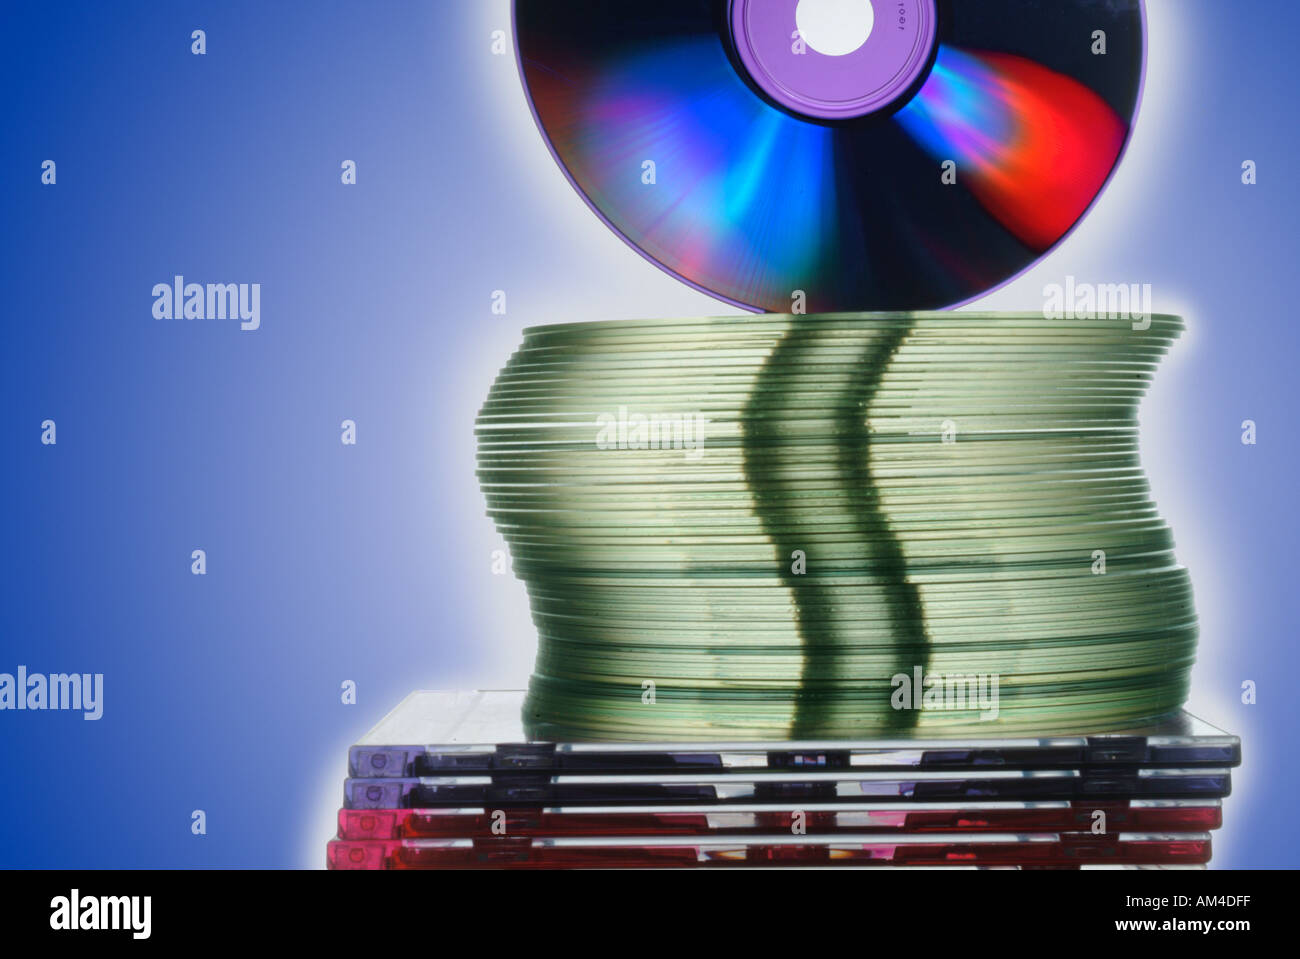 blank CD s and cases in a stack seen edge on - Stock Image